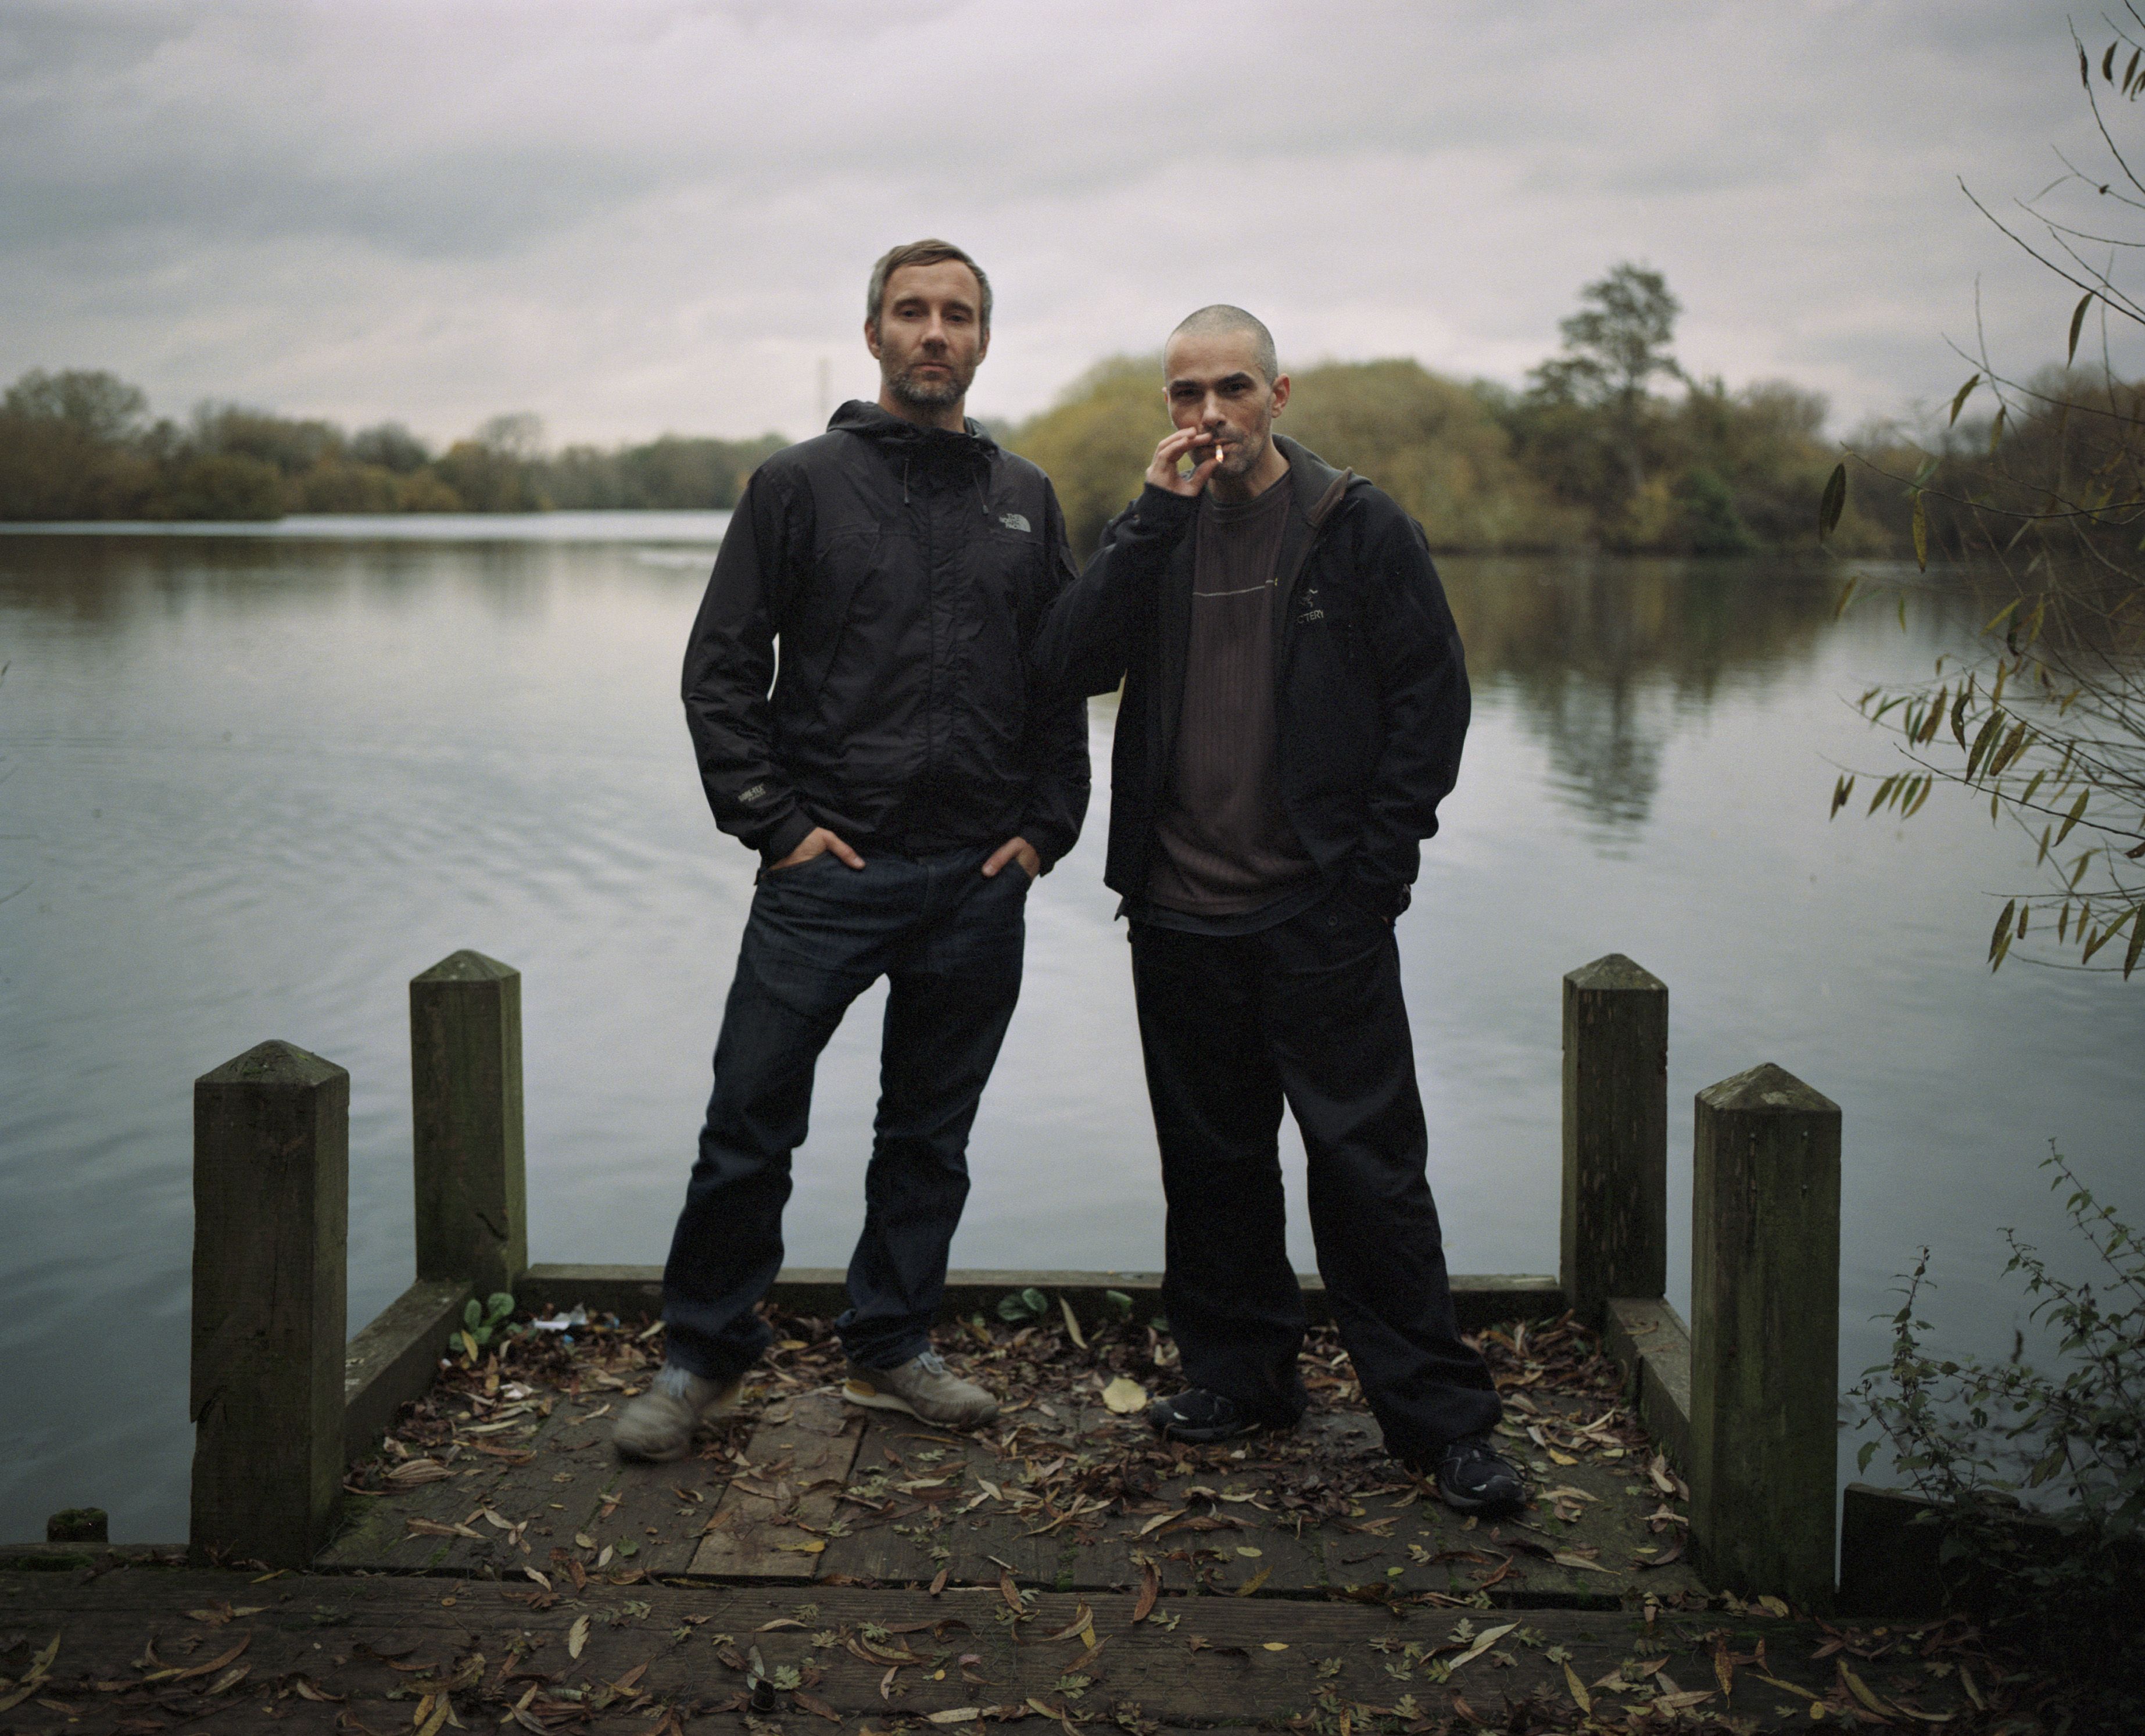 Autechre have announced a new fall North American tour, beginning September 24th in Portland, OR